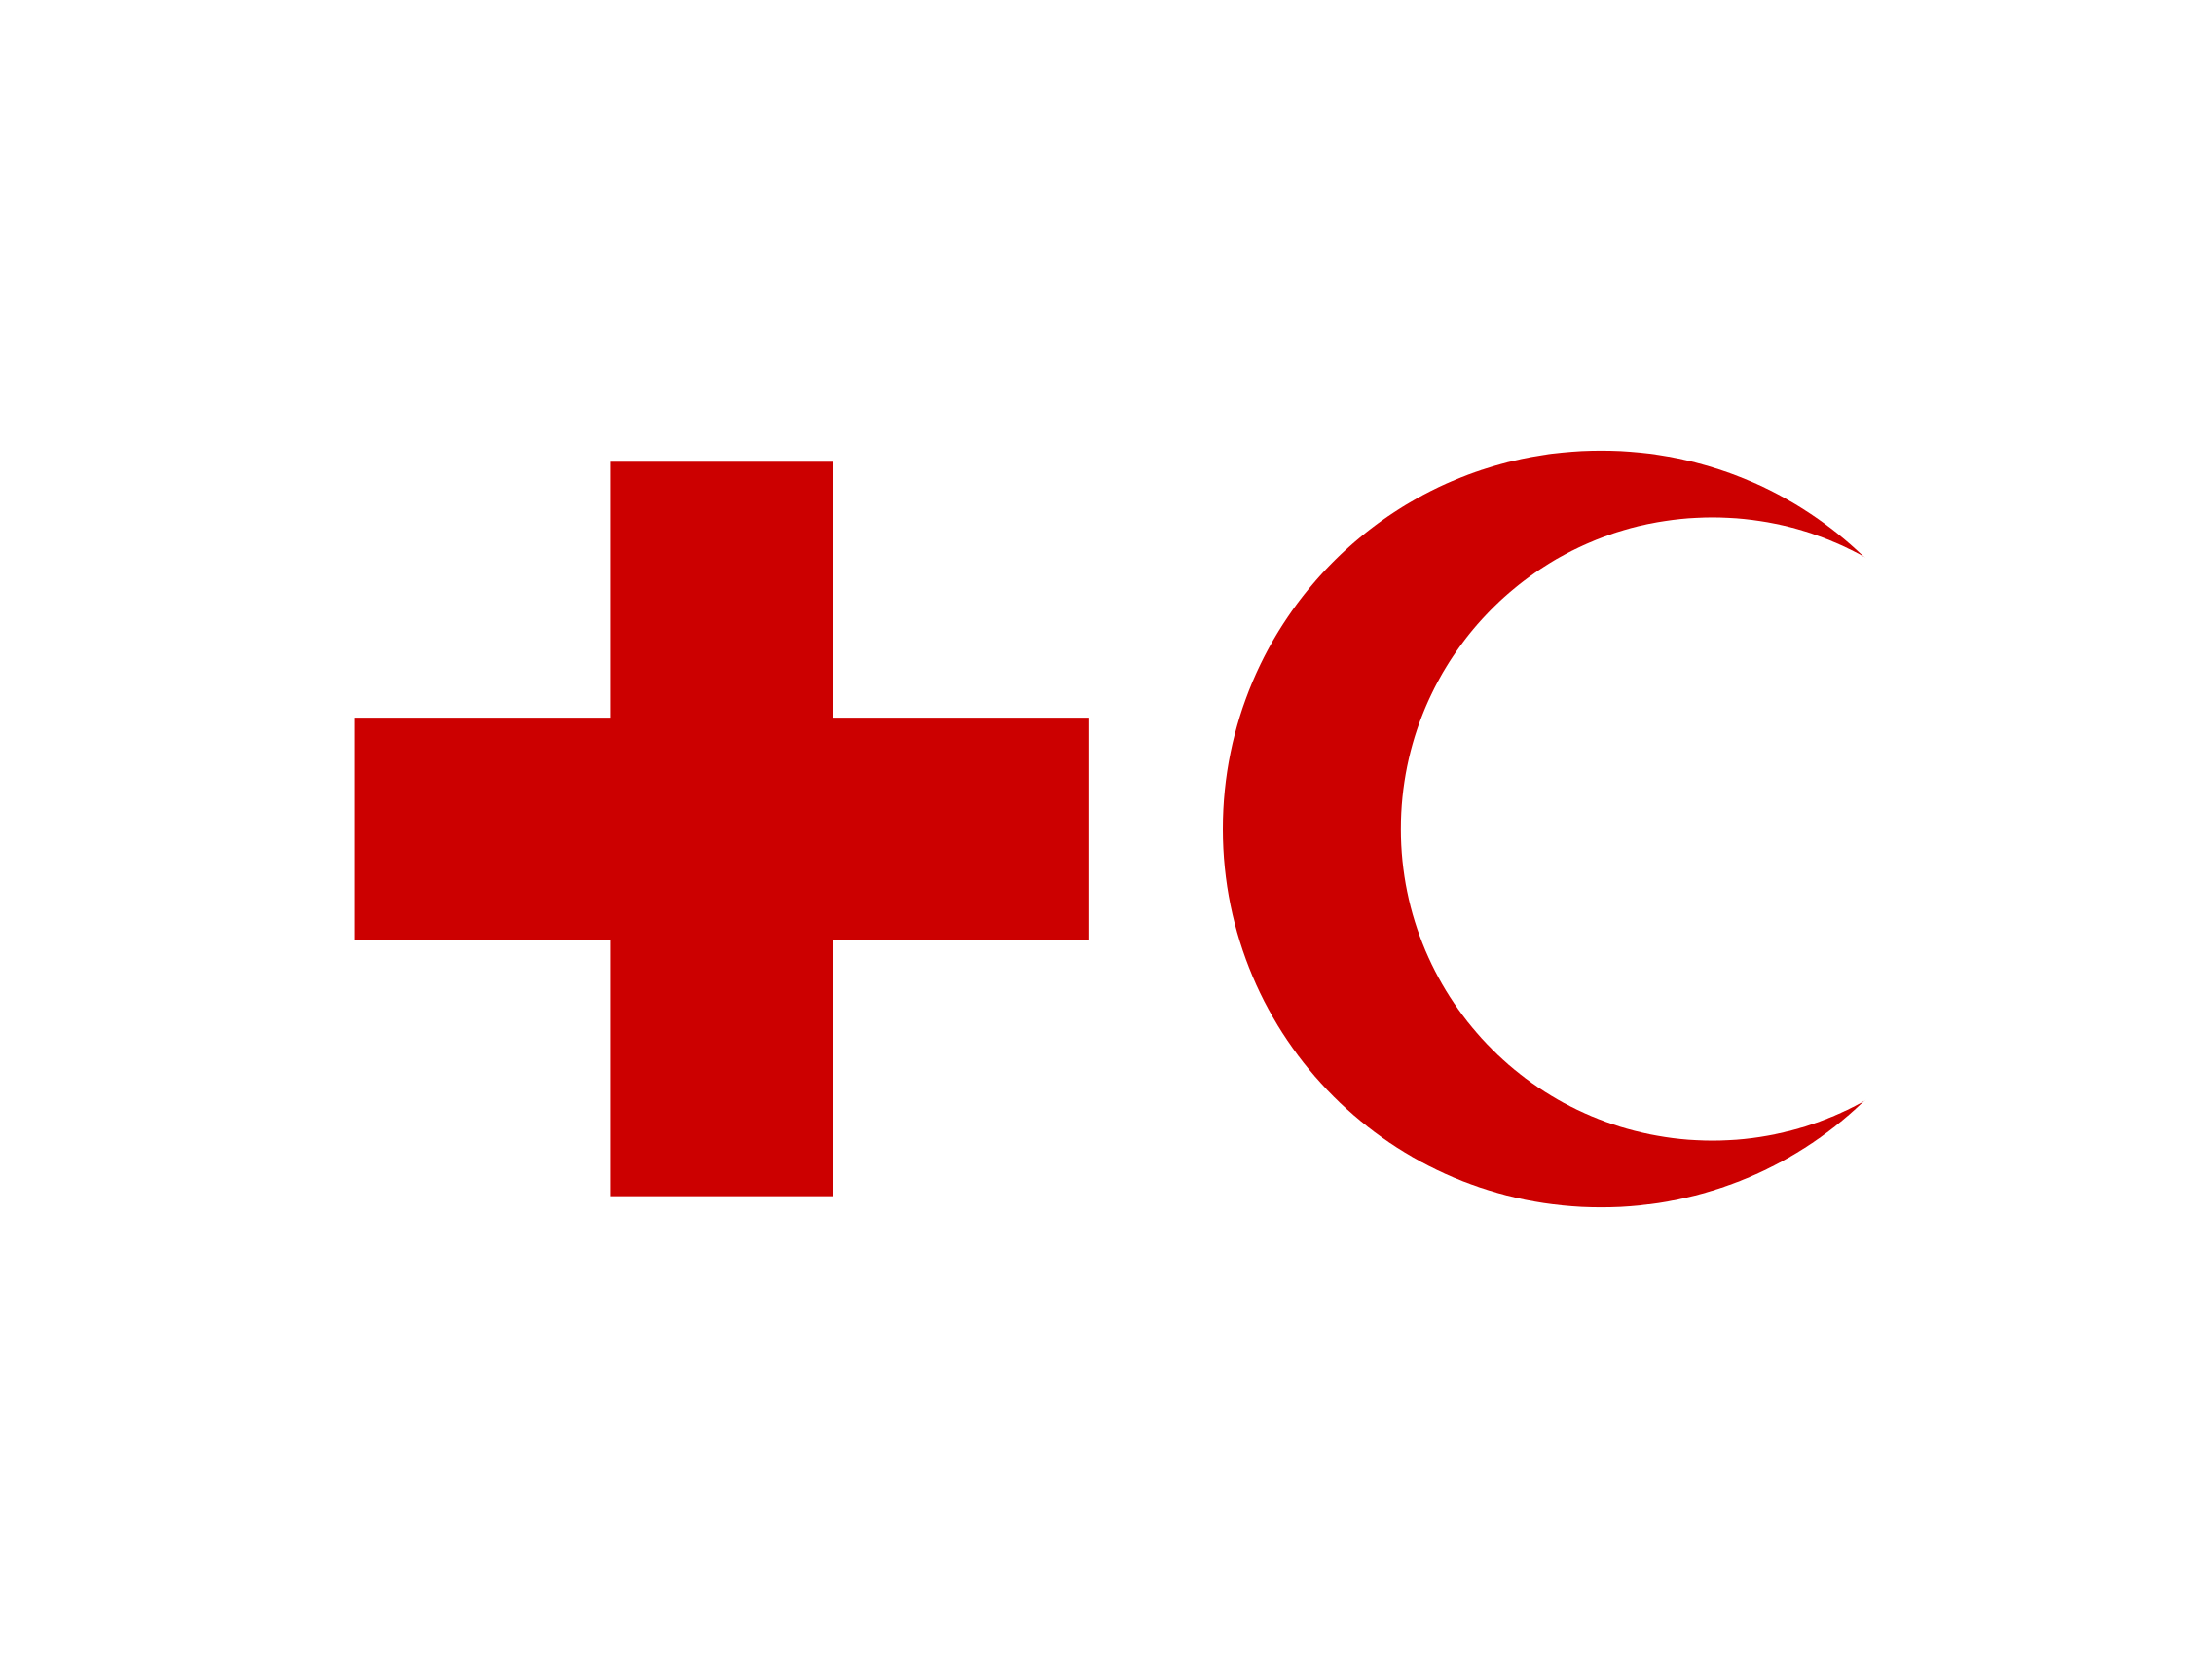 Red Cross And Red Crescent Logo Logok